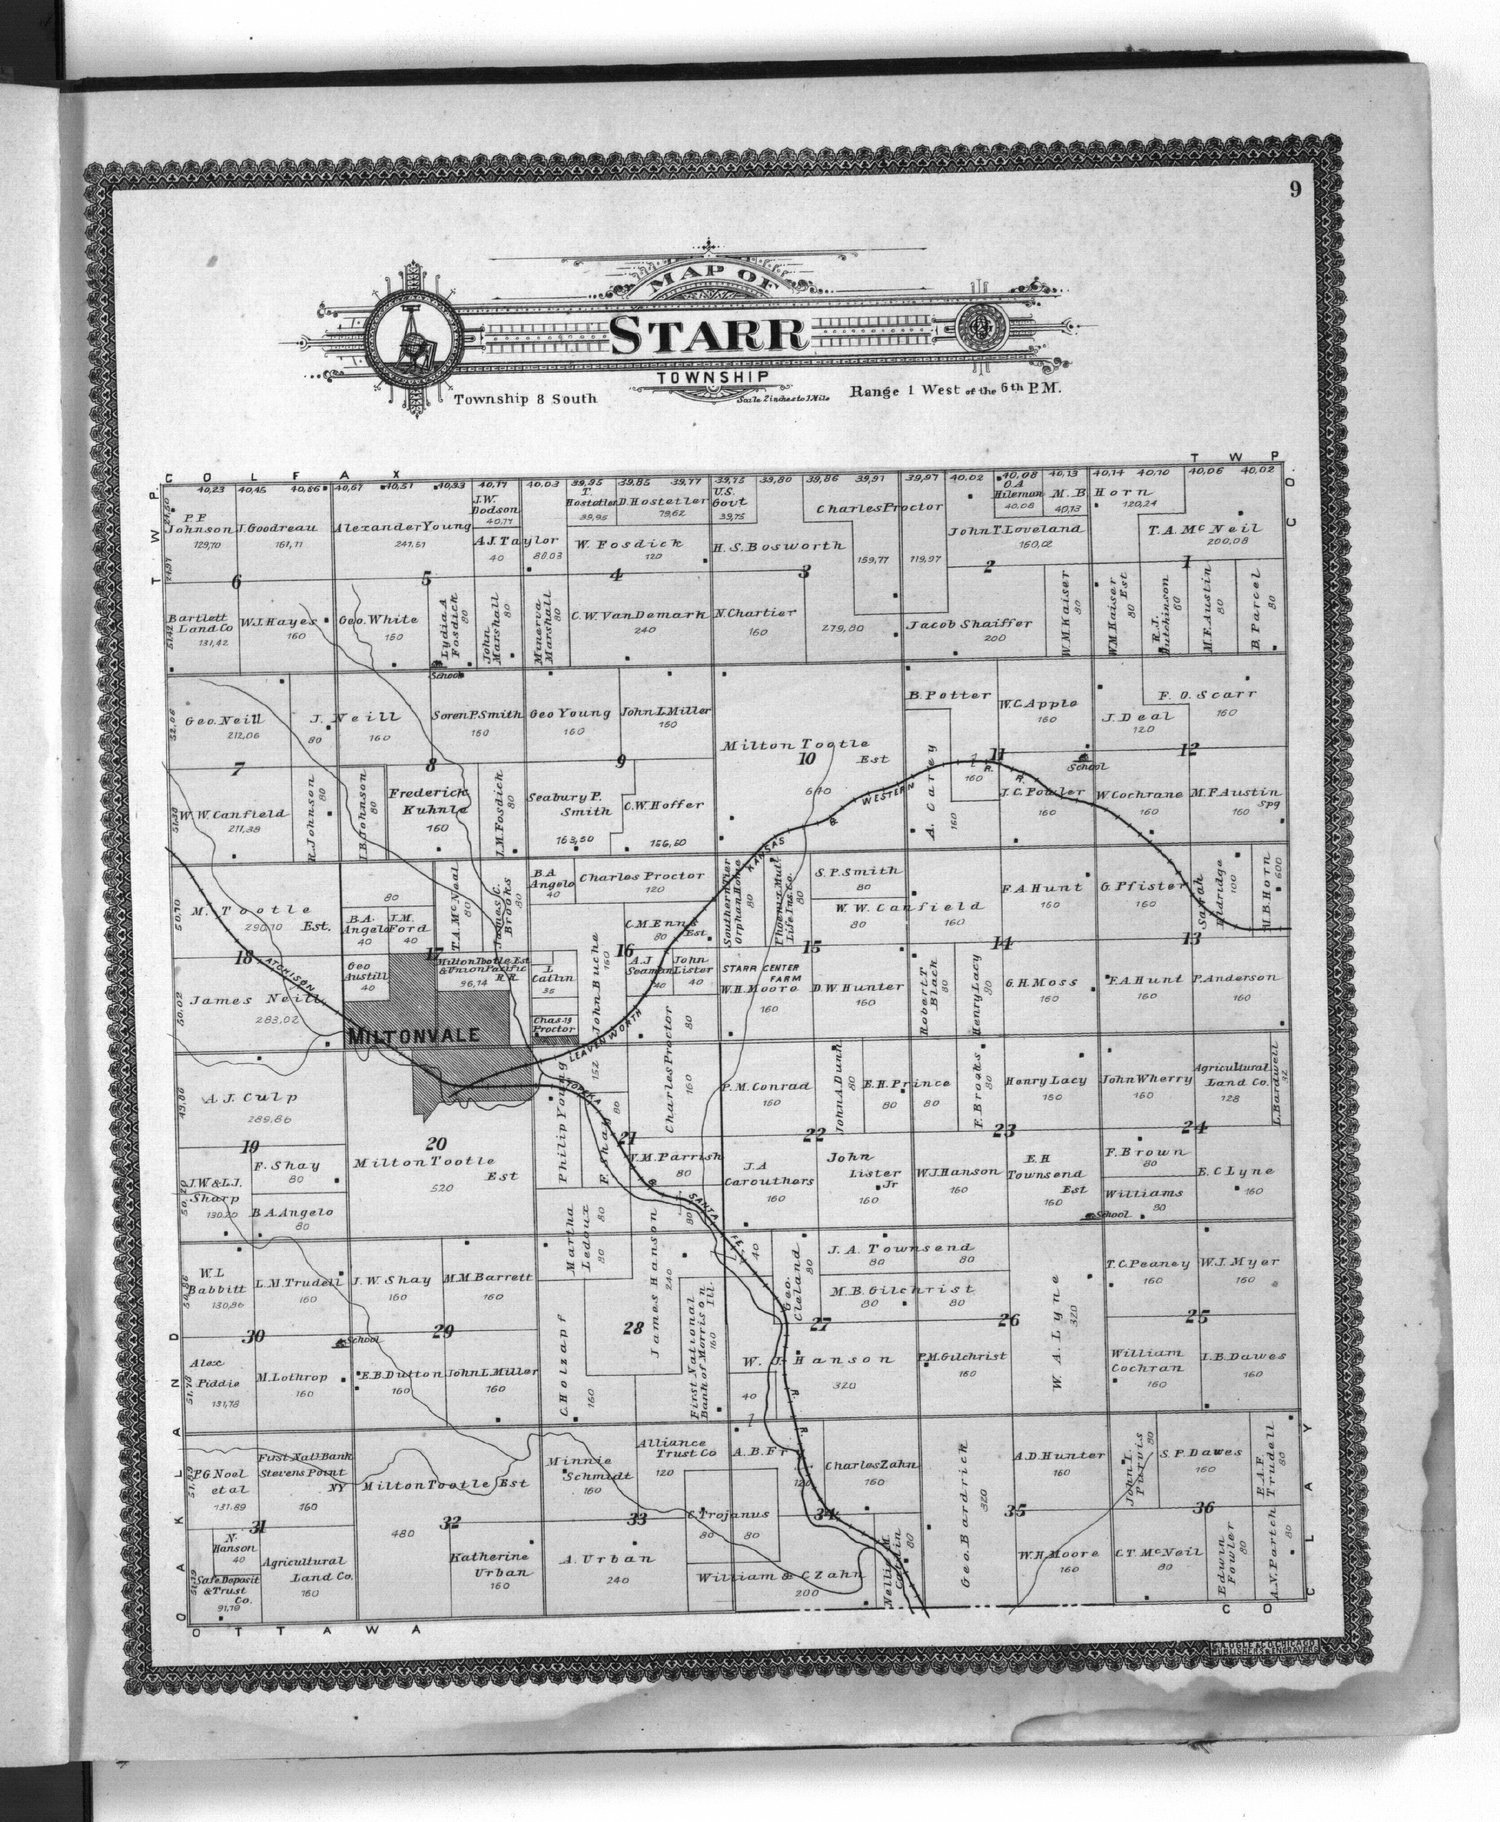 Standard atlas of Cloud County, Kansas - 9